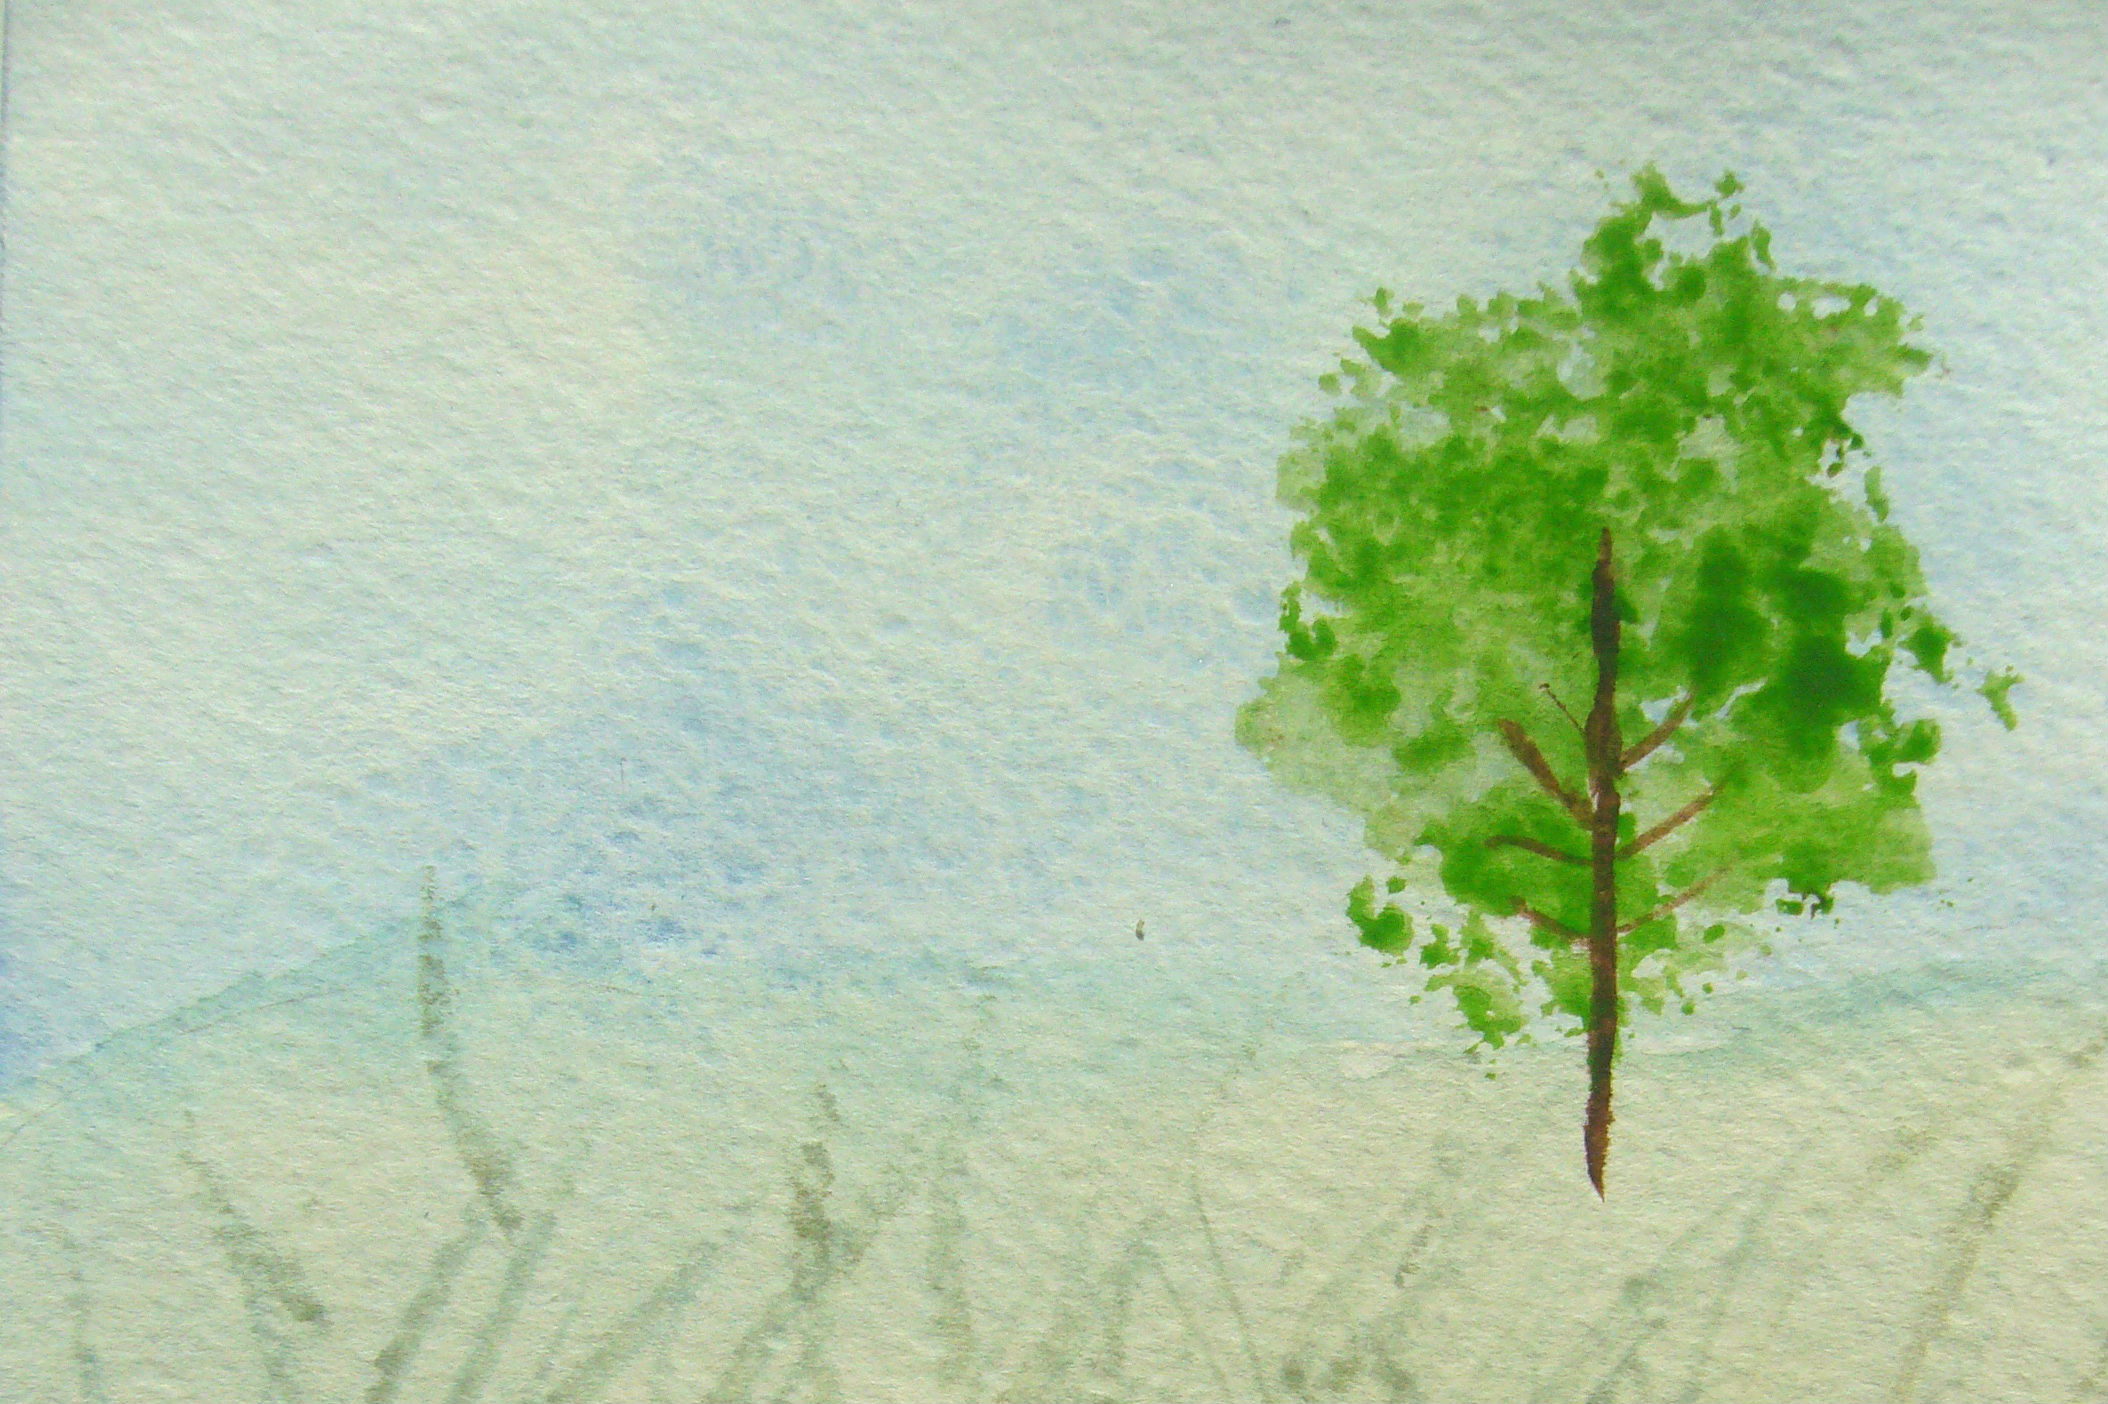 Watercolour Step-by-Step: Beginners